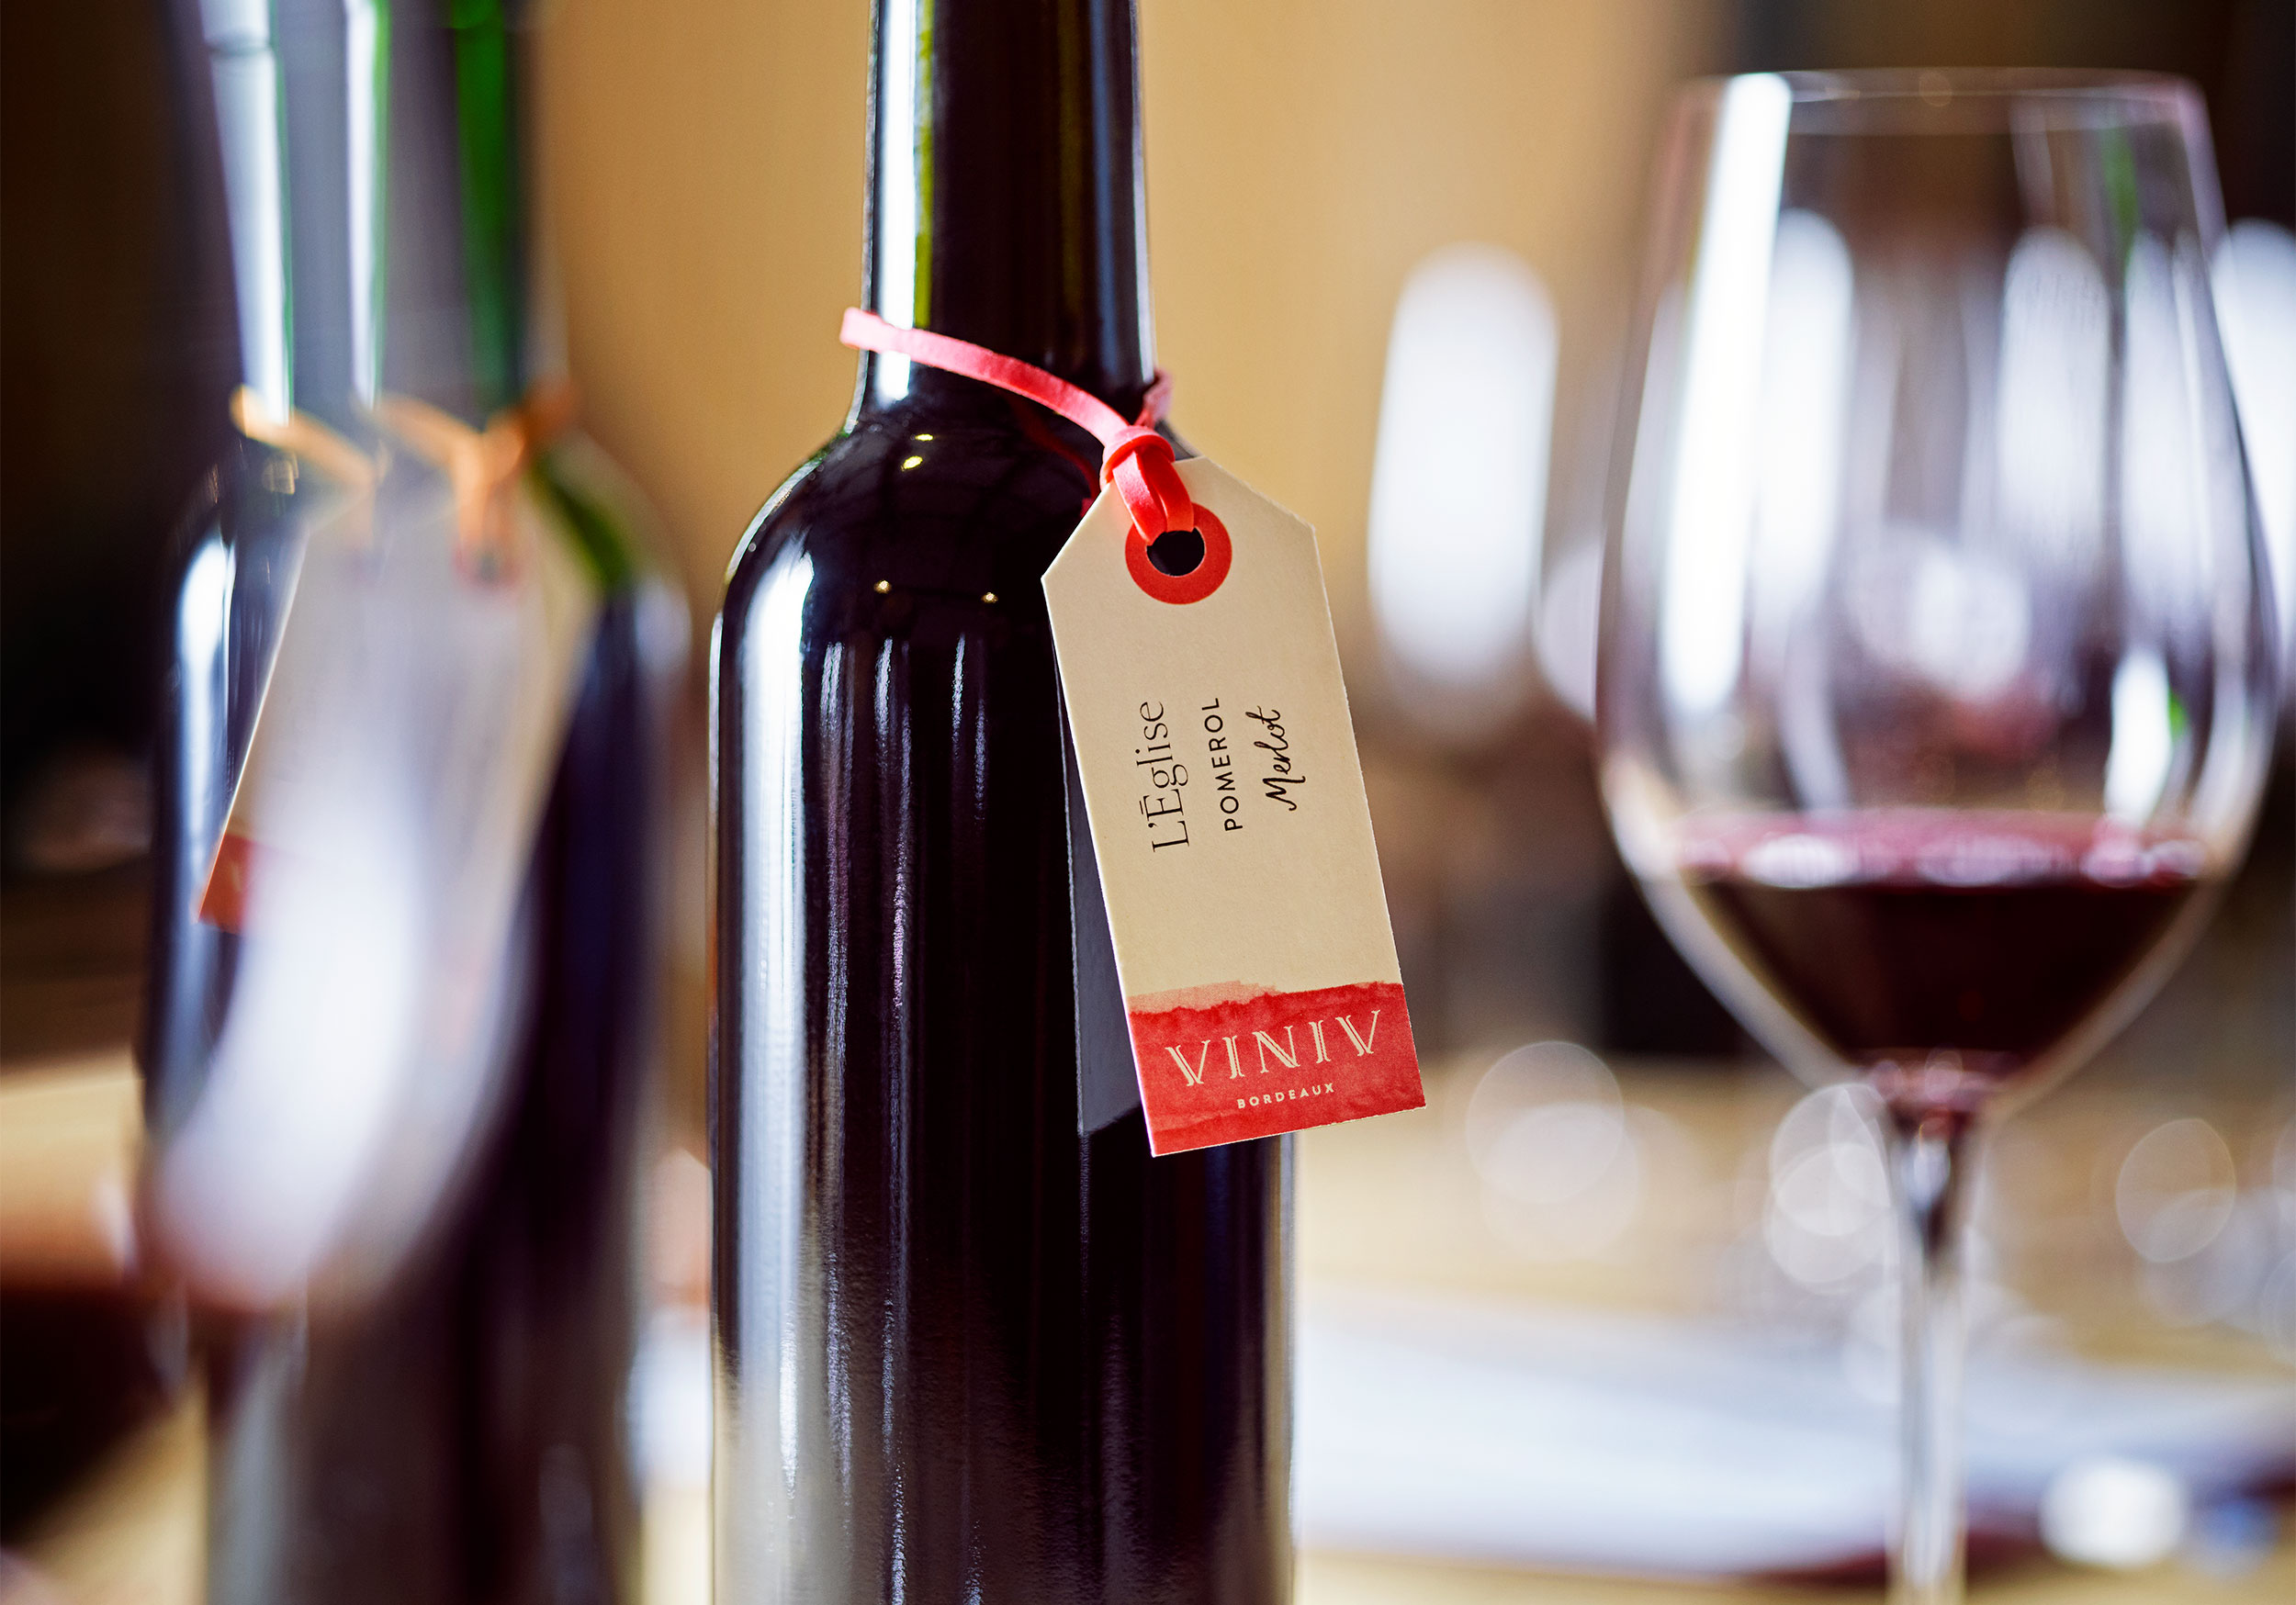 Creating your own bespoke wine blend